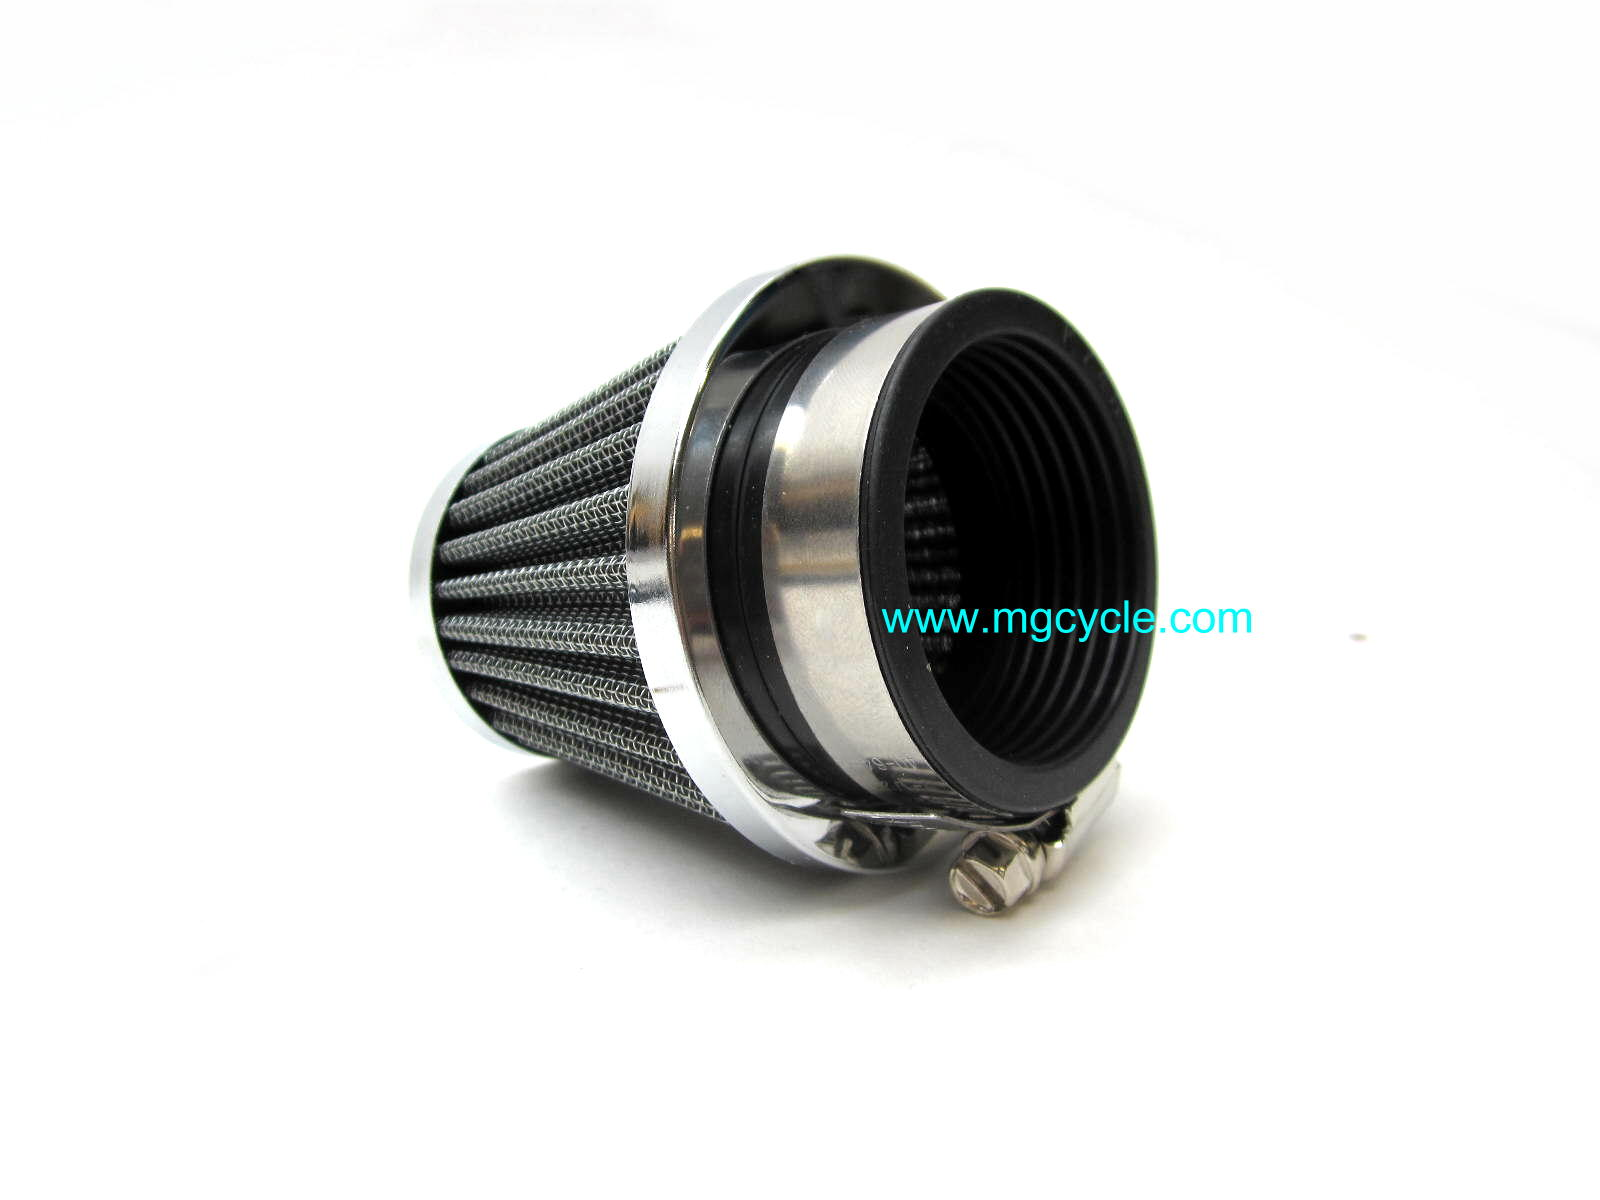 conical air filter pod for PHF30 and PHF36 carburetors